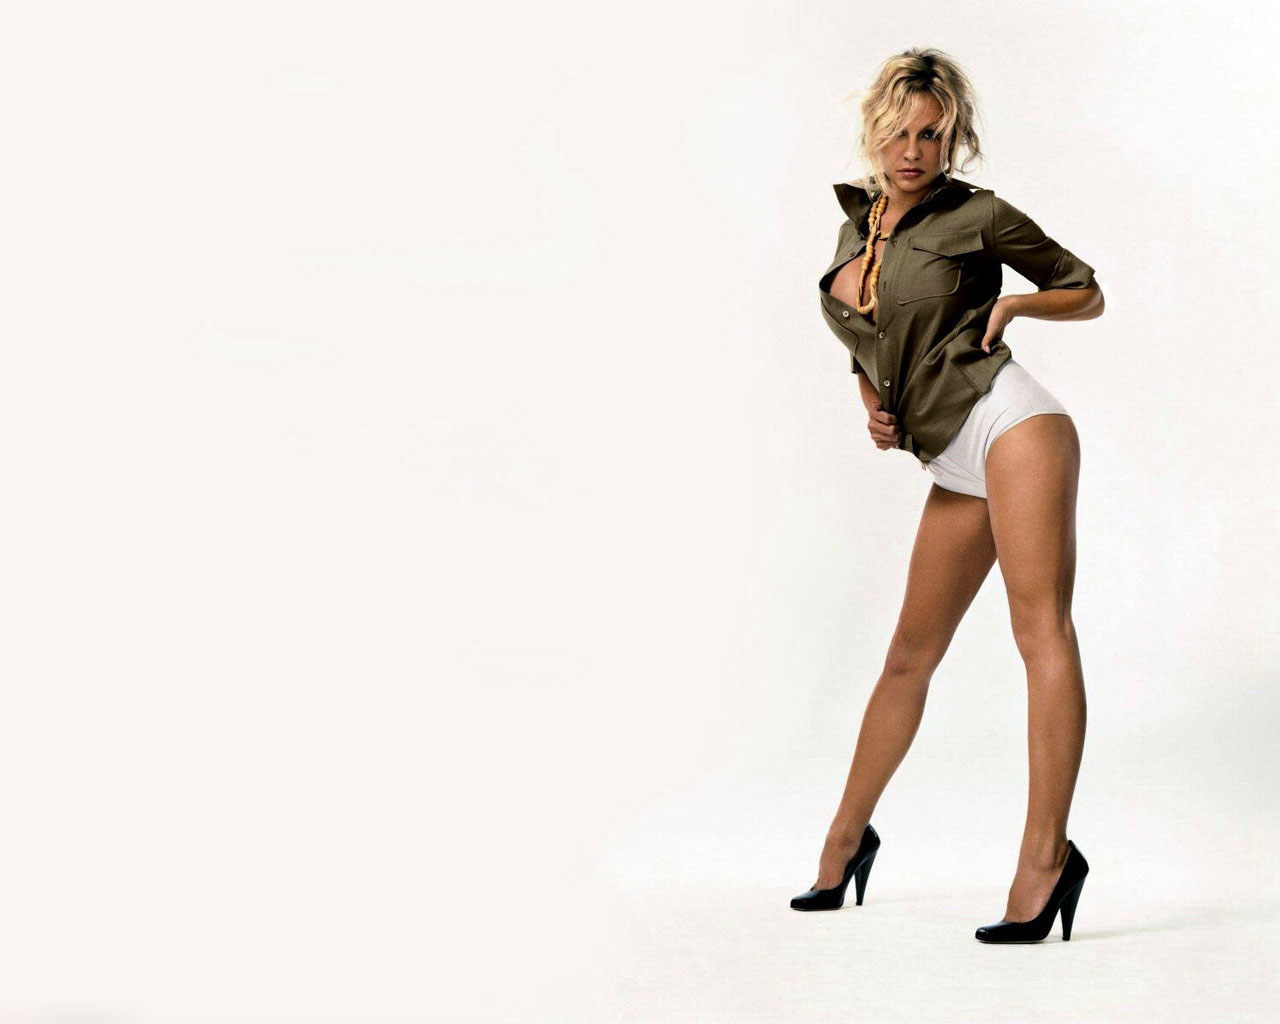 Download 3d Moving Wallpapers For Windows 7 Download Pamela Anderson Wallpaper Gallery